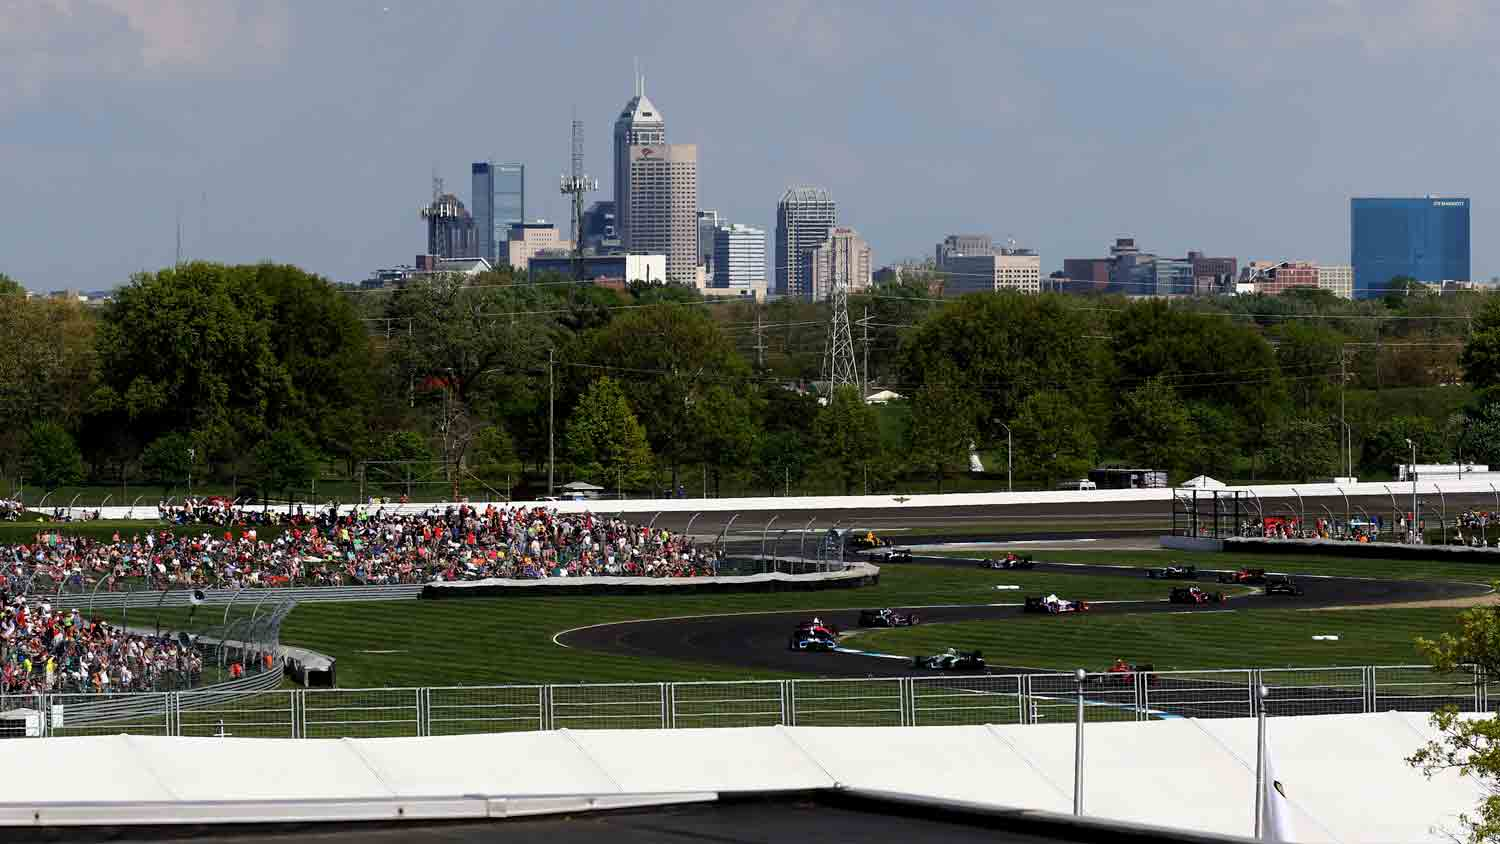 Grand-prix-of-indianapolis-2